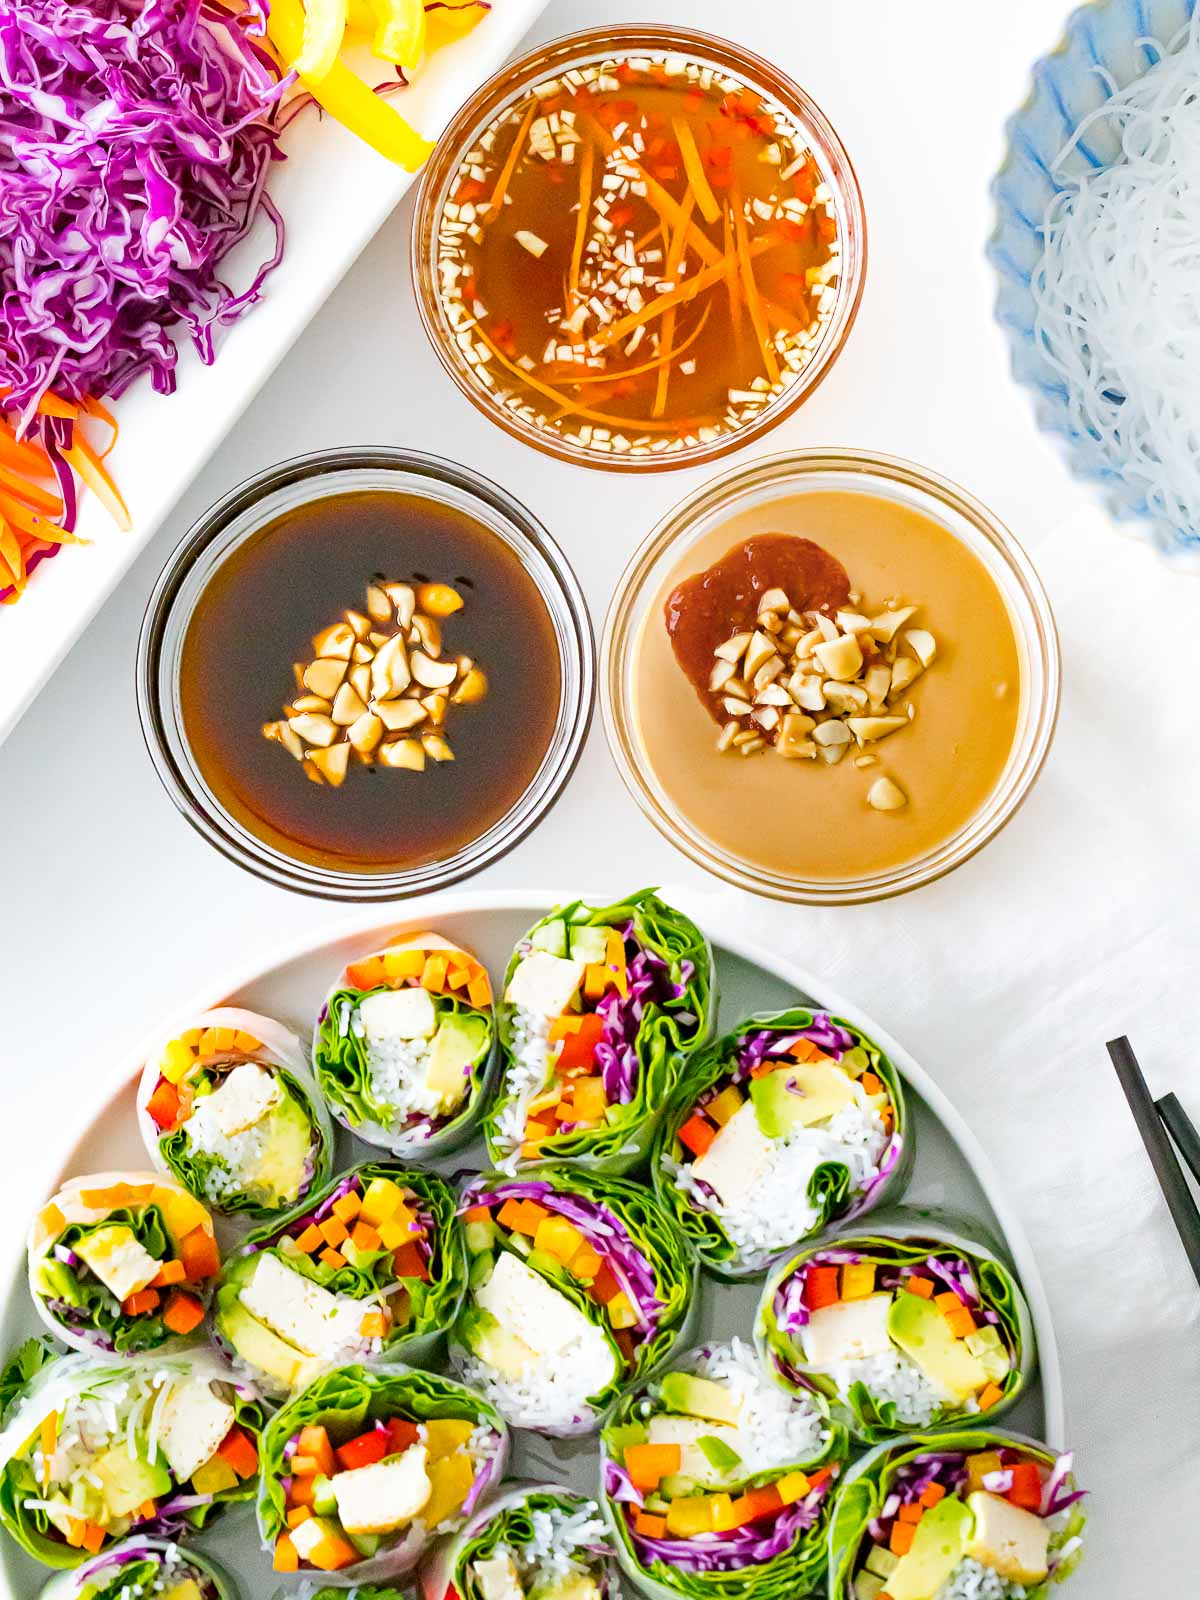 spring roll sauces including peanut sauce, fish sauce, and hoisin next to a plate of spring rolls